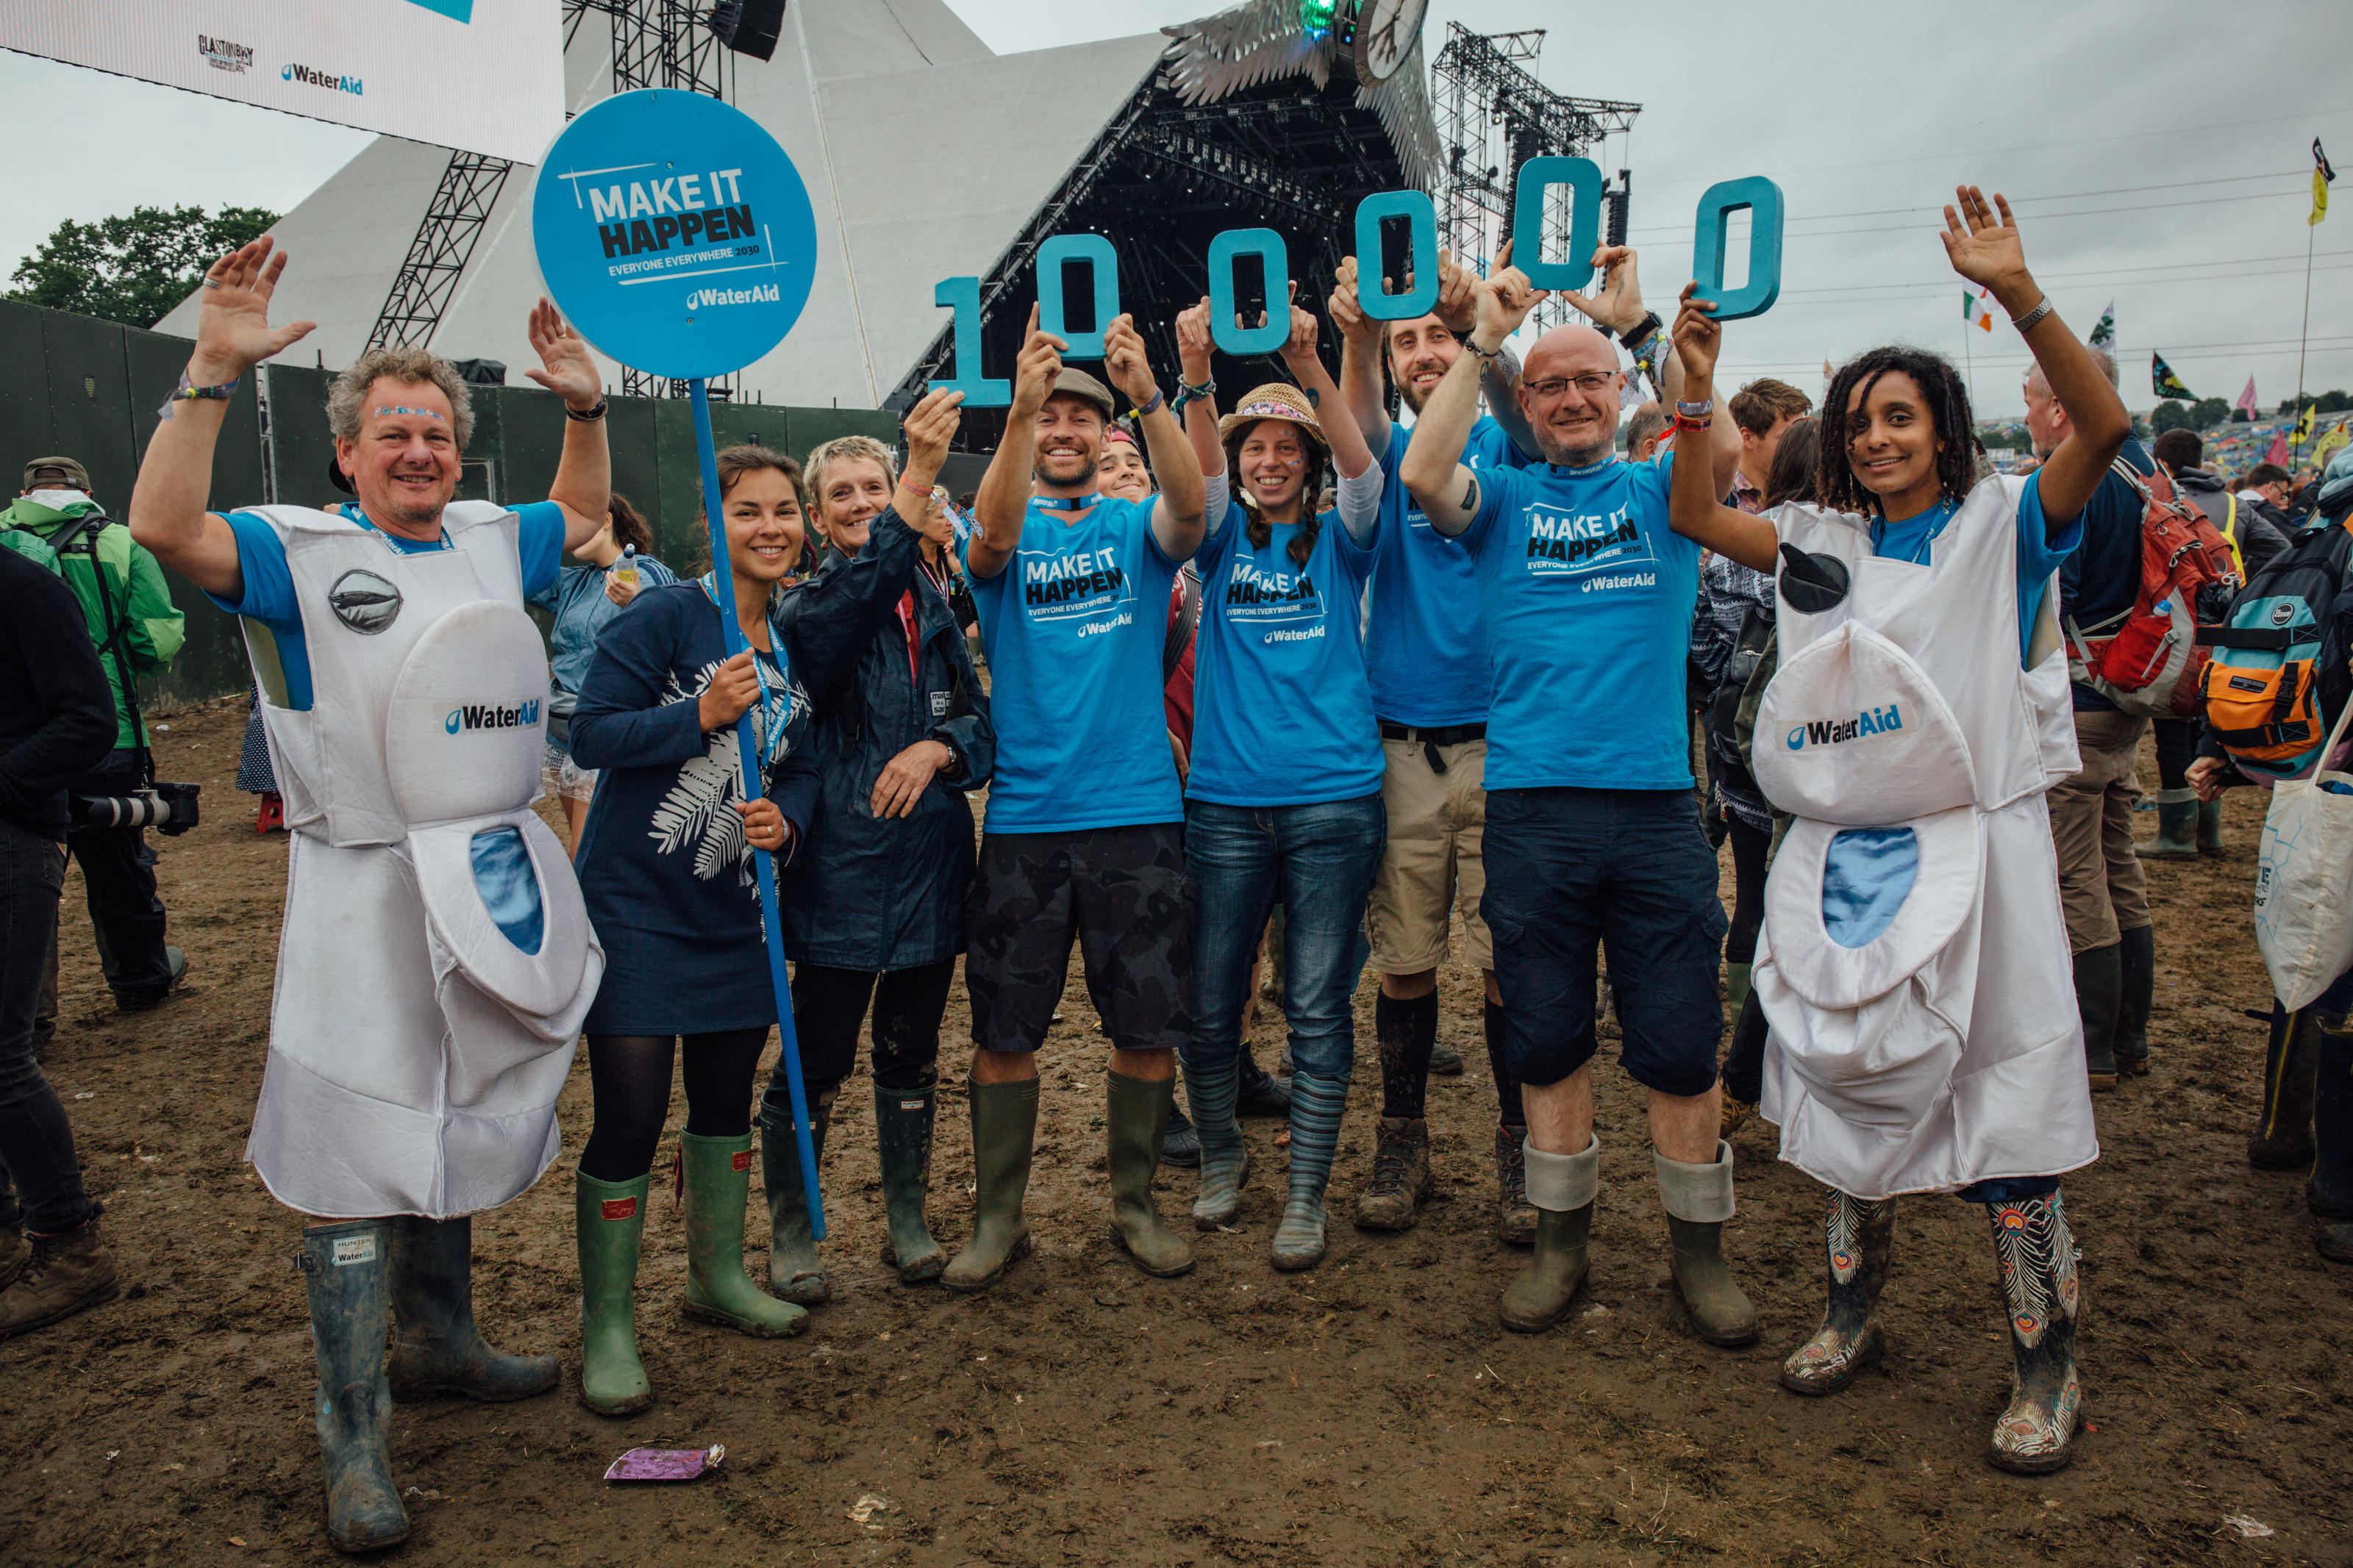 WaterAid staff at Glastonbury 2015, celebrating the 100000 signatures signed for our petition.